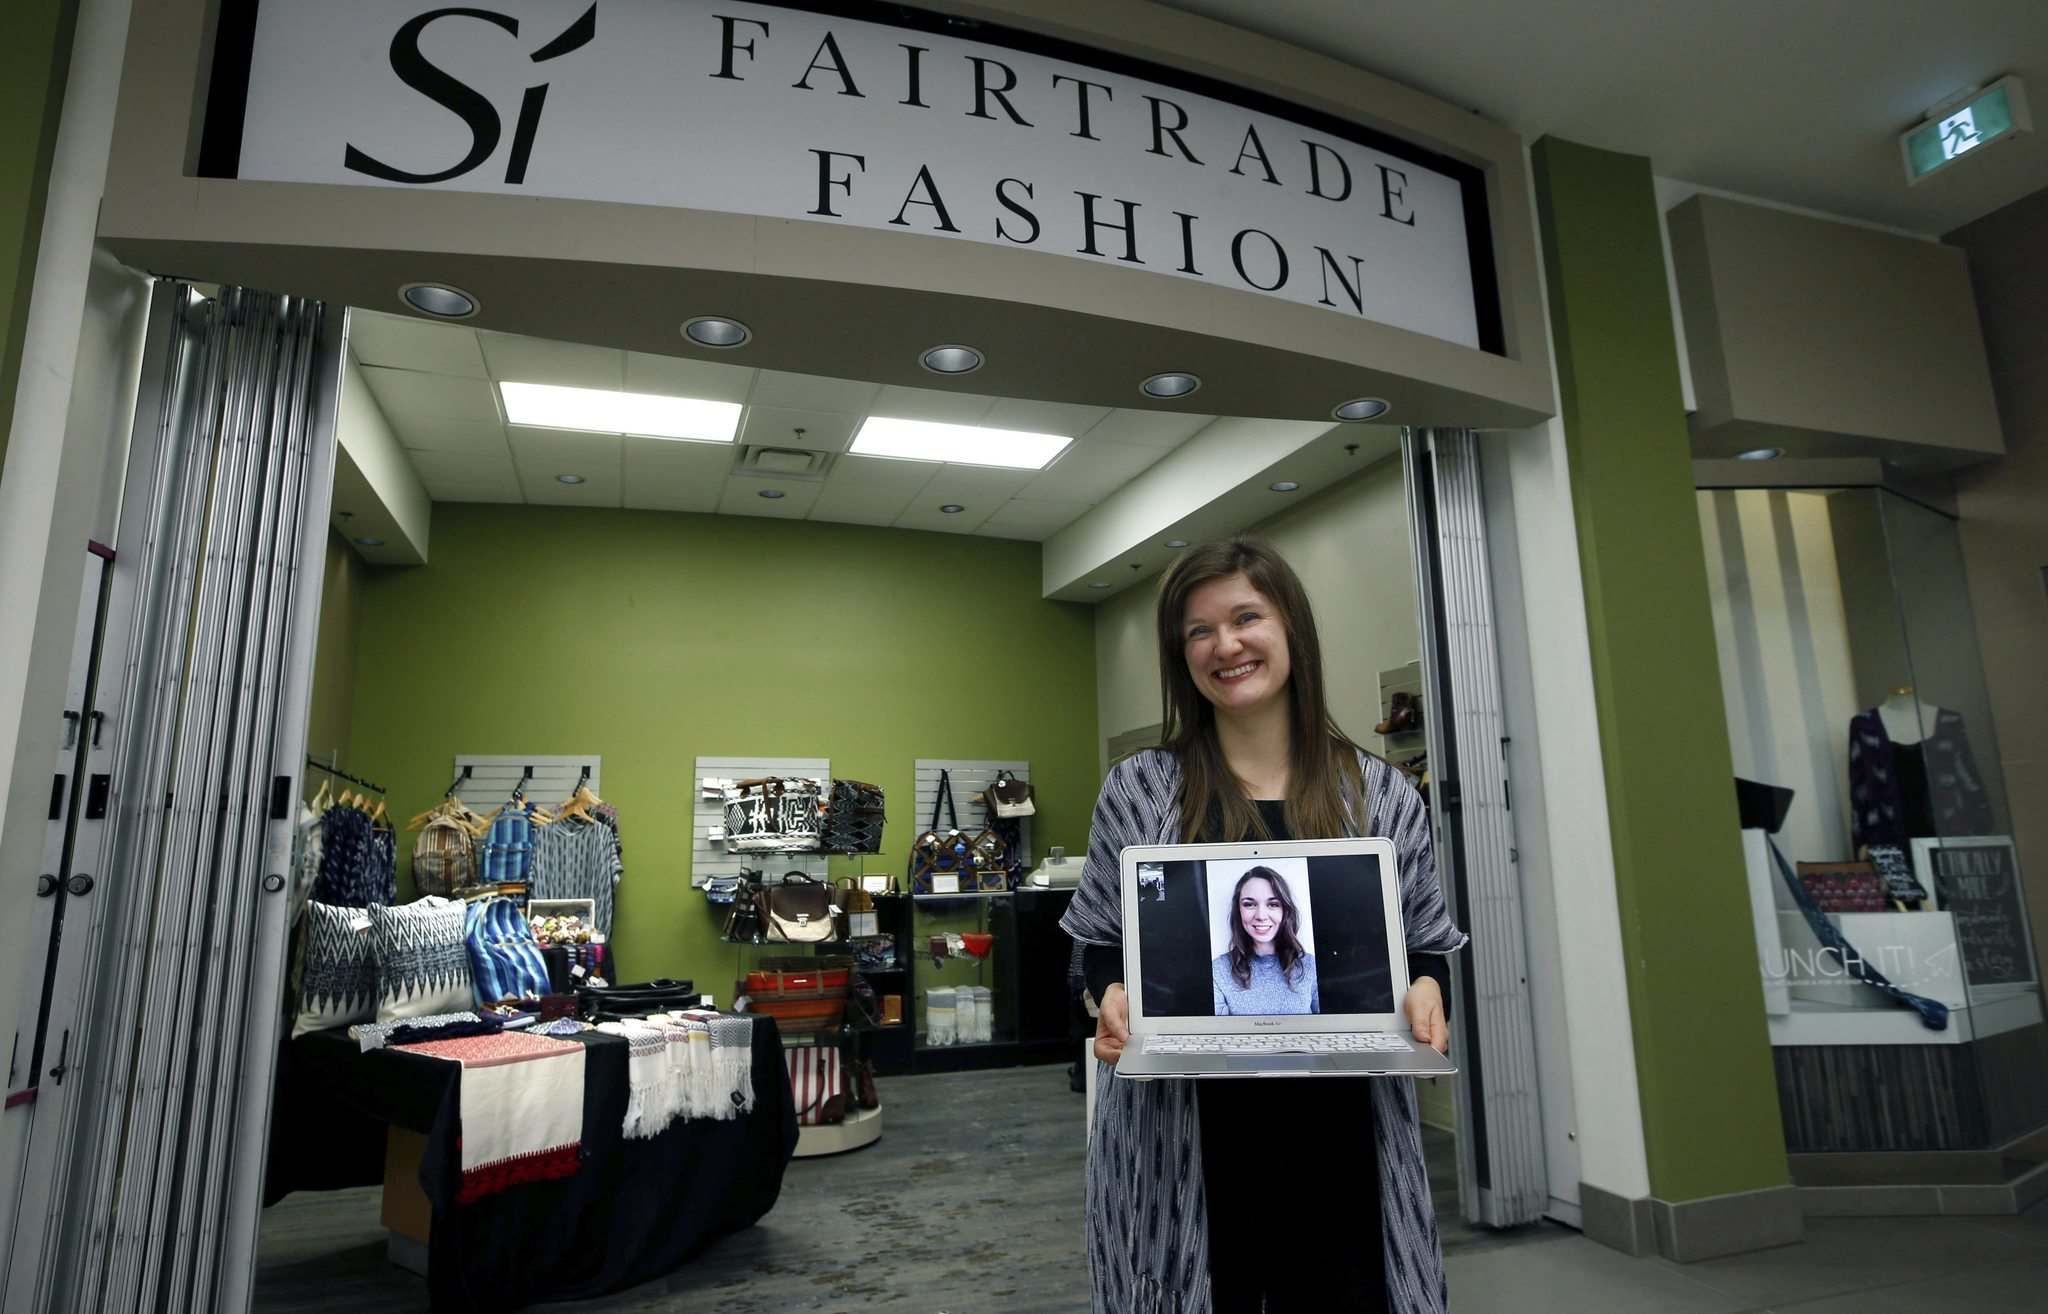 WAYNE GLOWACKI / WINNIPEG FREE PRESS</p><p>Ceilidh Moulden, co-owner of pop-up store Si Fairtrade Fashion in Cityplace, holds a laptop connected by Facetime to fellow co-owner Sarah Cullihall, who is from Winnipeg but is currently in Guatemala.</p>